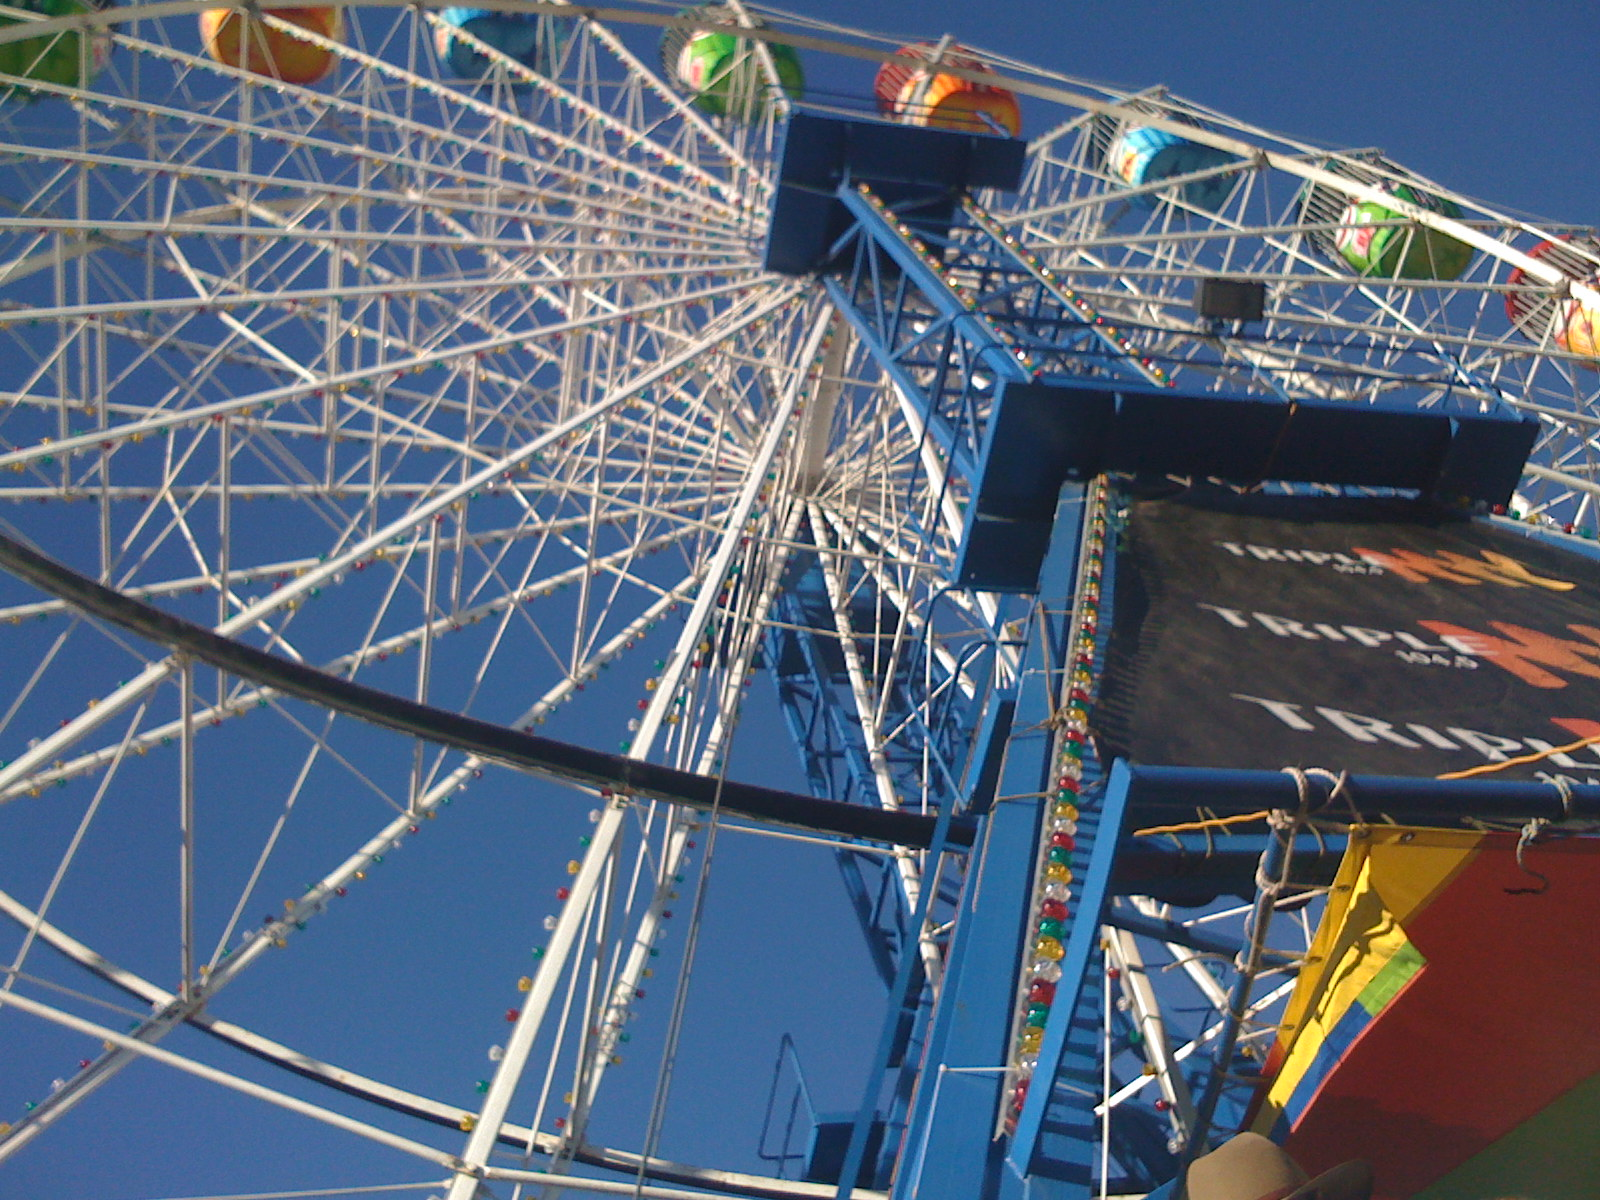 wheel ride looking up